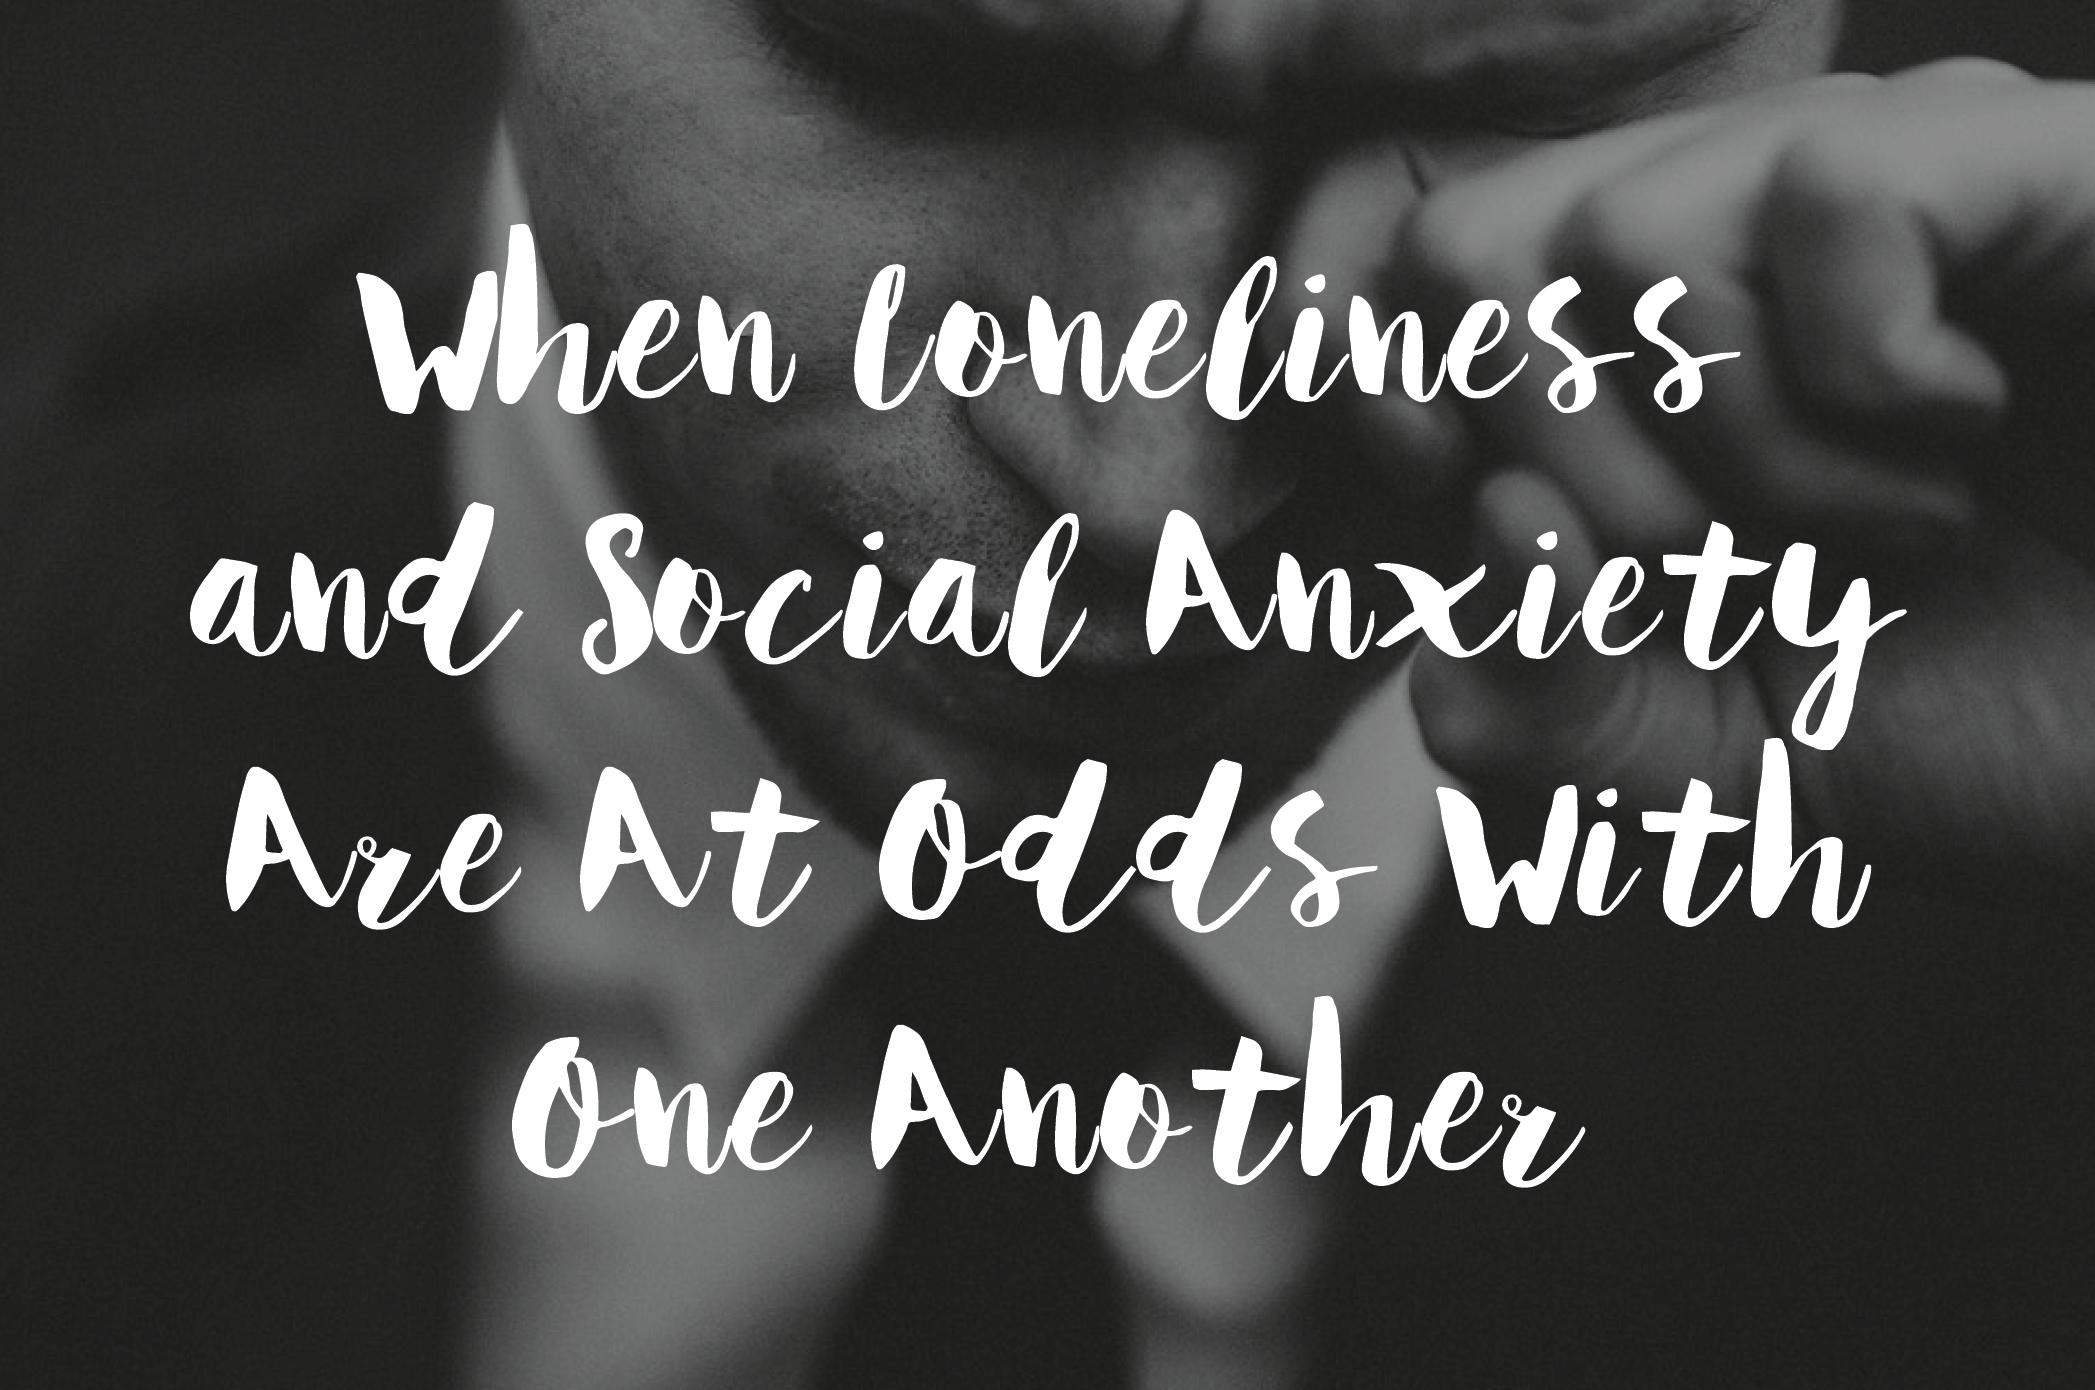 Anxiety May Heighten Social >> When Loneliness And Social Anxiety Are At Odds With One Another